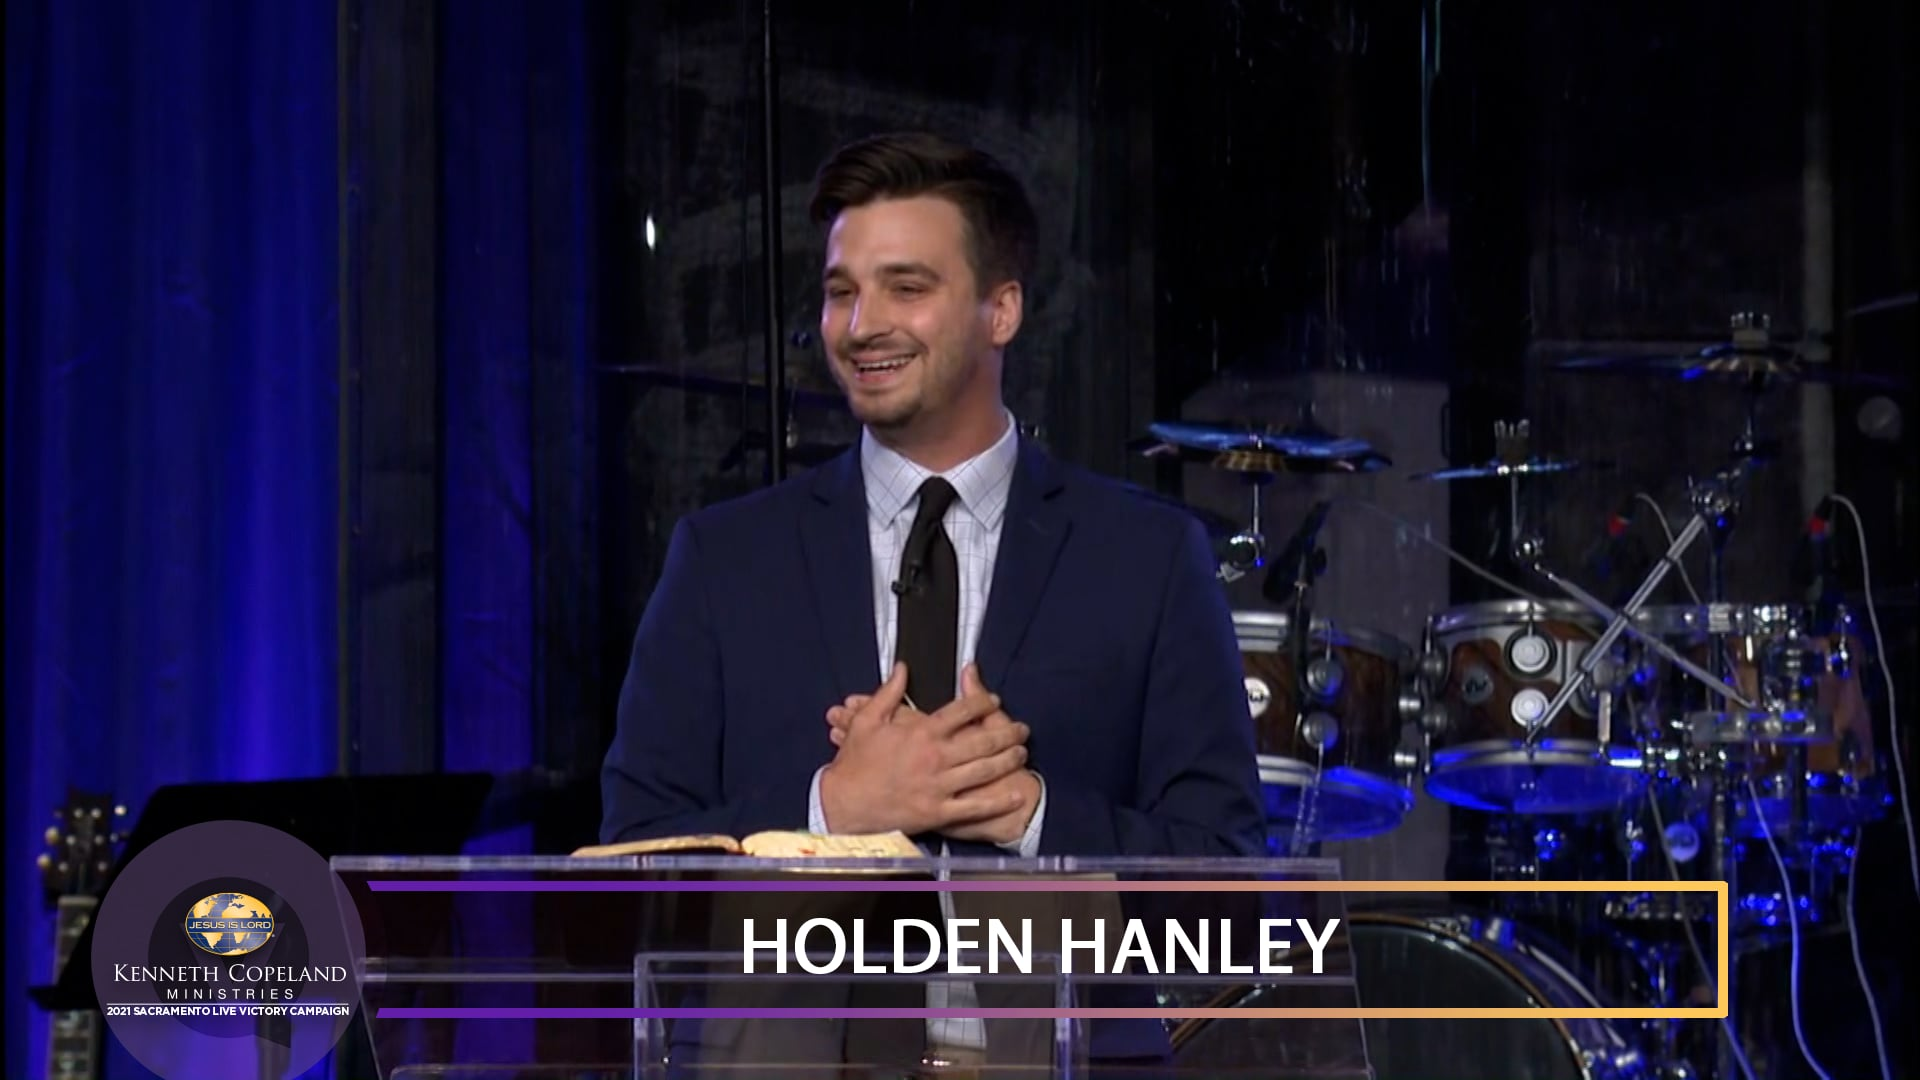 Join Holden Hanley as vital aspects of prayer are revealed at the 2021 Sacramento Victory Campaign. As a pray-er, you are an operative in the kingdom of God. You have a part to play—prayer! The healing of this land is connected to the prayers of the saints and the prayer of faith never goes unanswered!